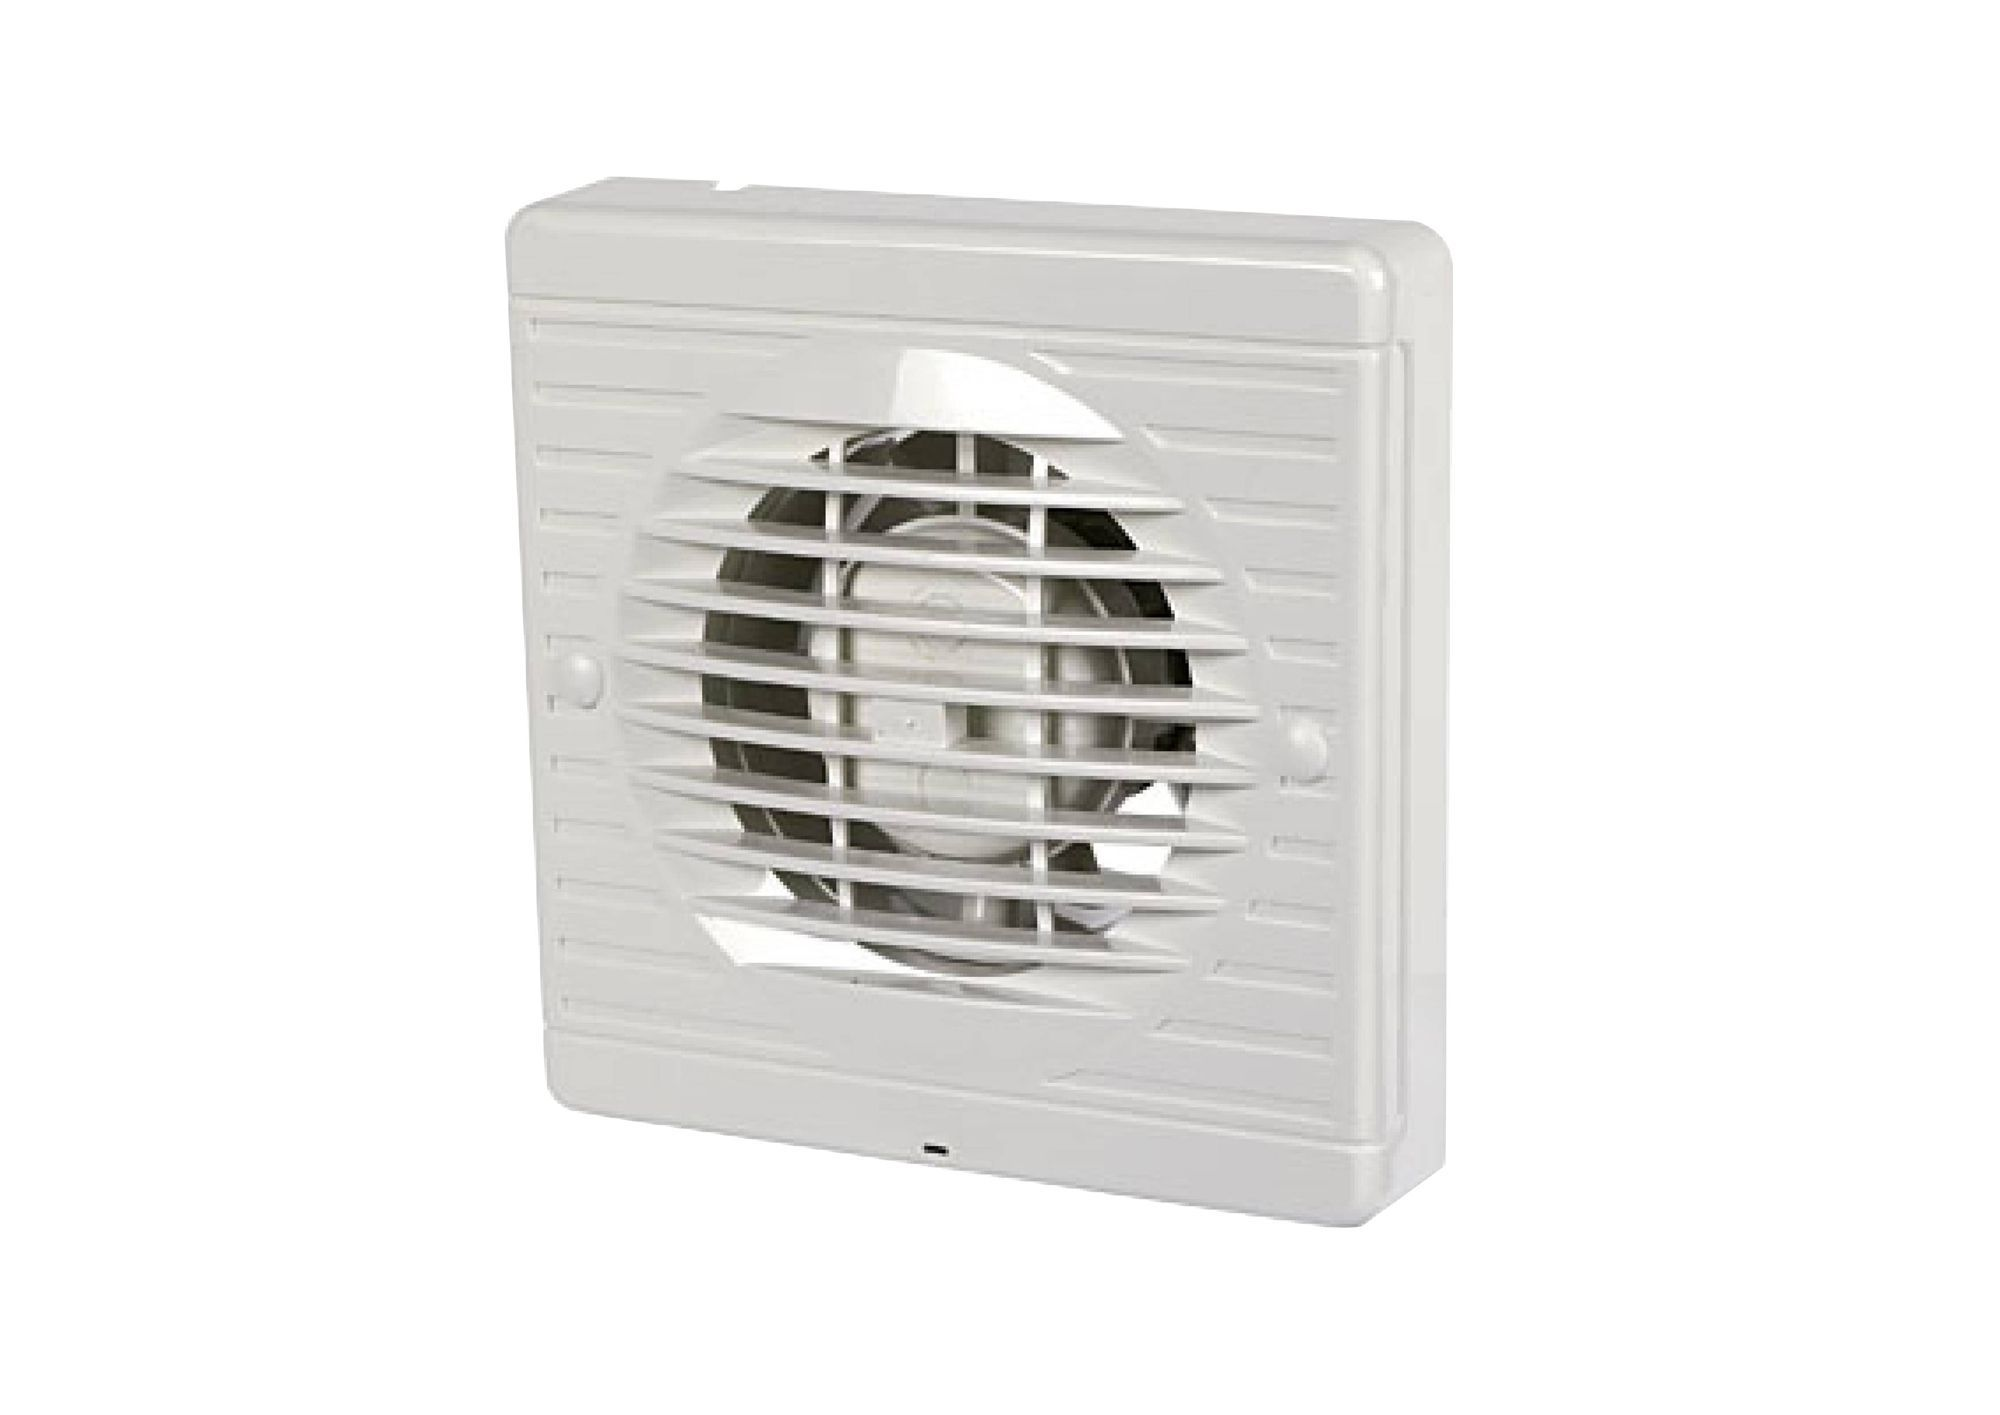 Bathroom extractor fans with timer - Manrose Vxf100lvs Low Energy Bathroom Extractor Fan D 98mm